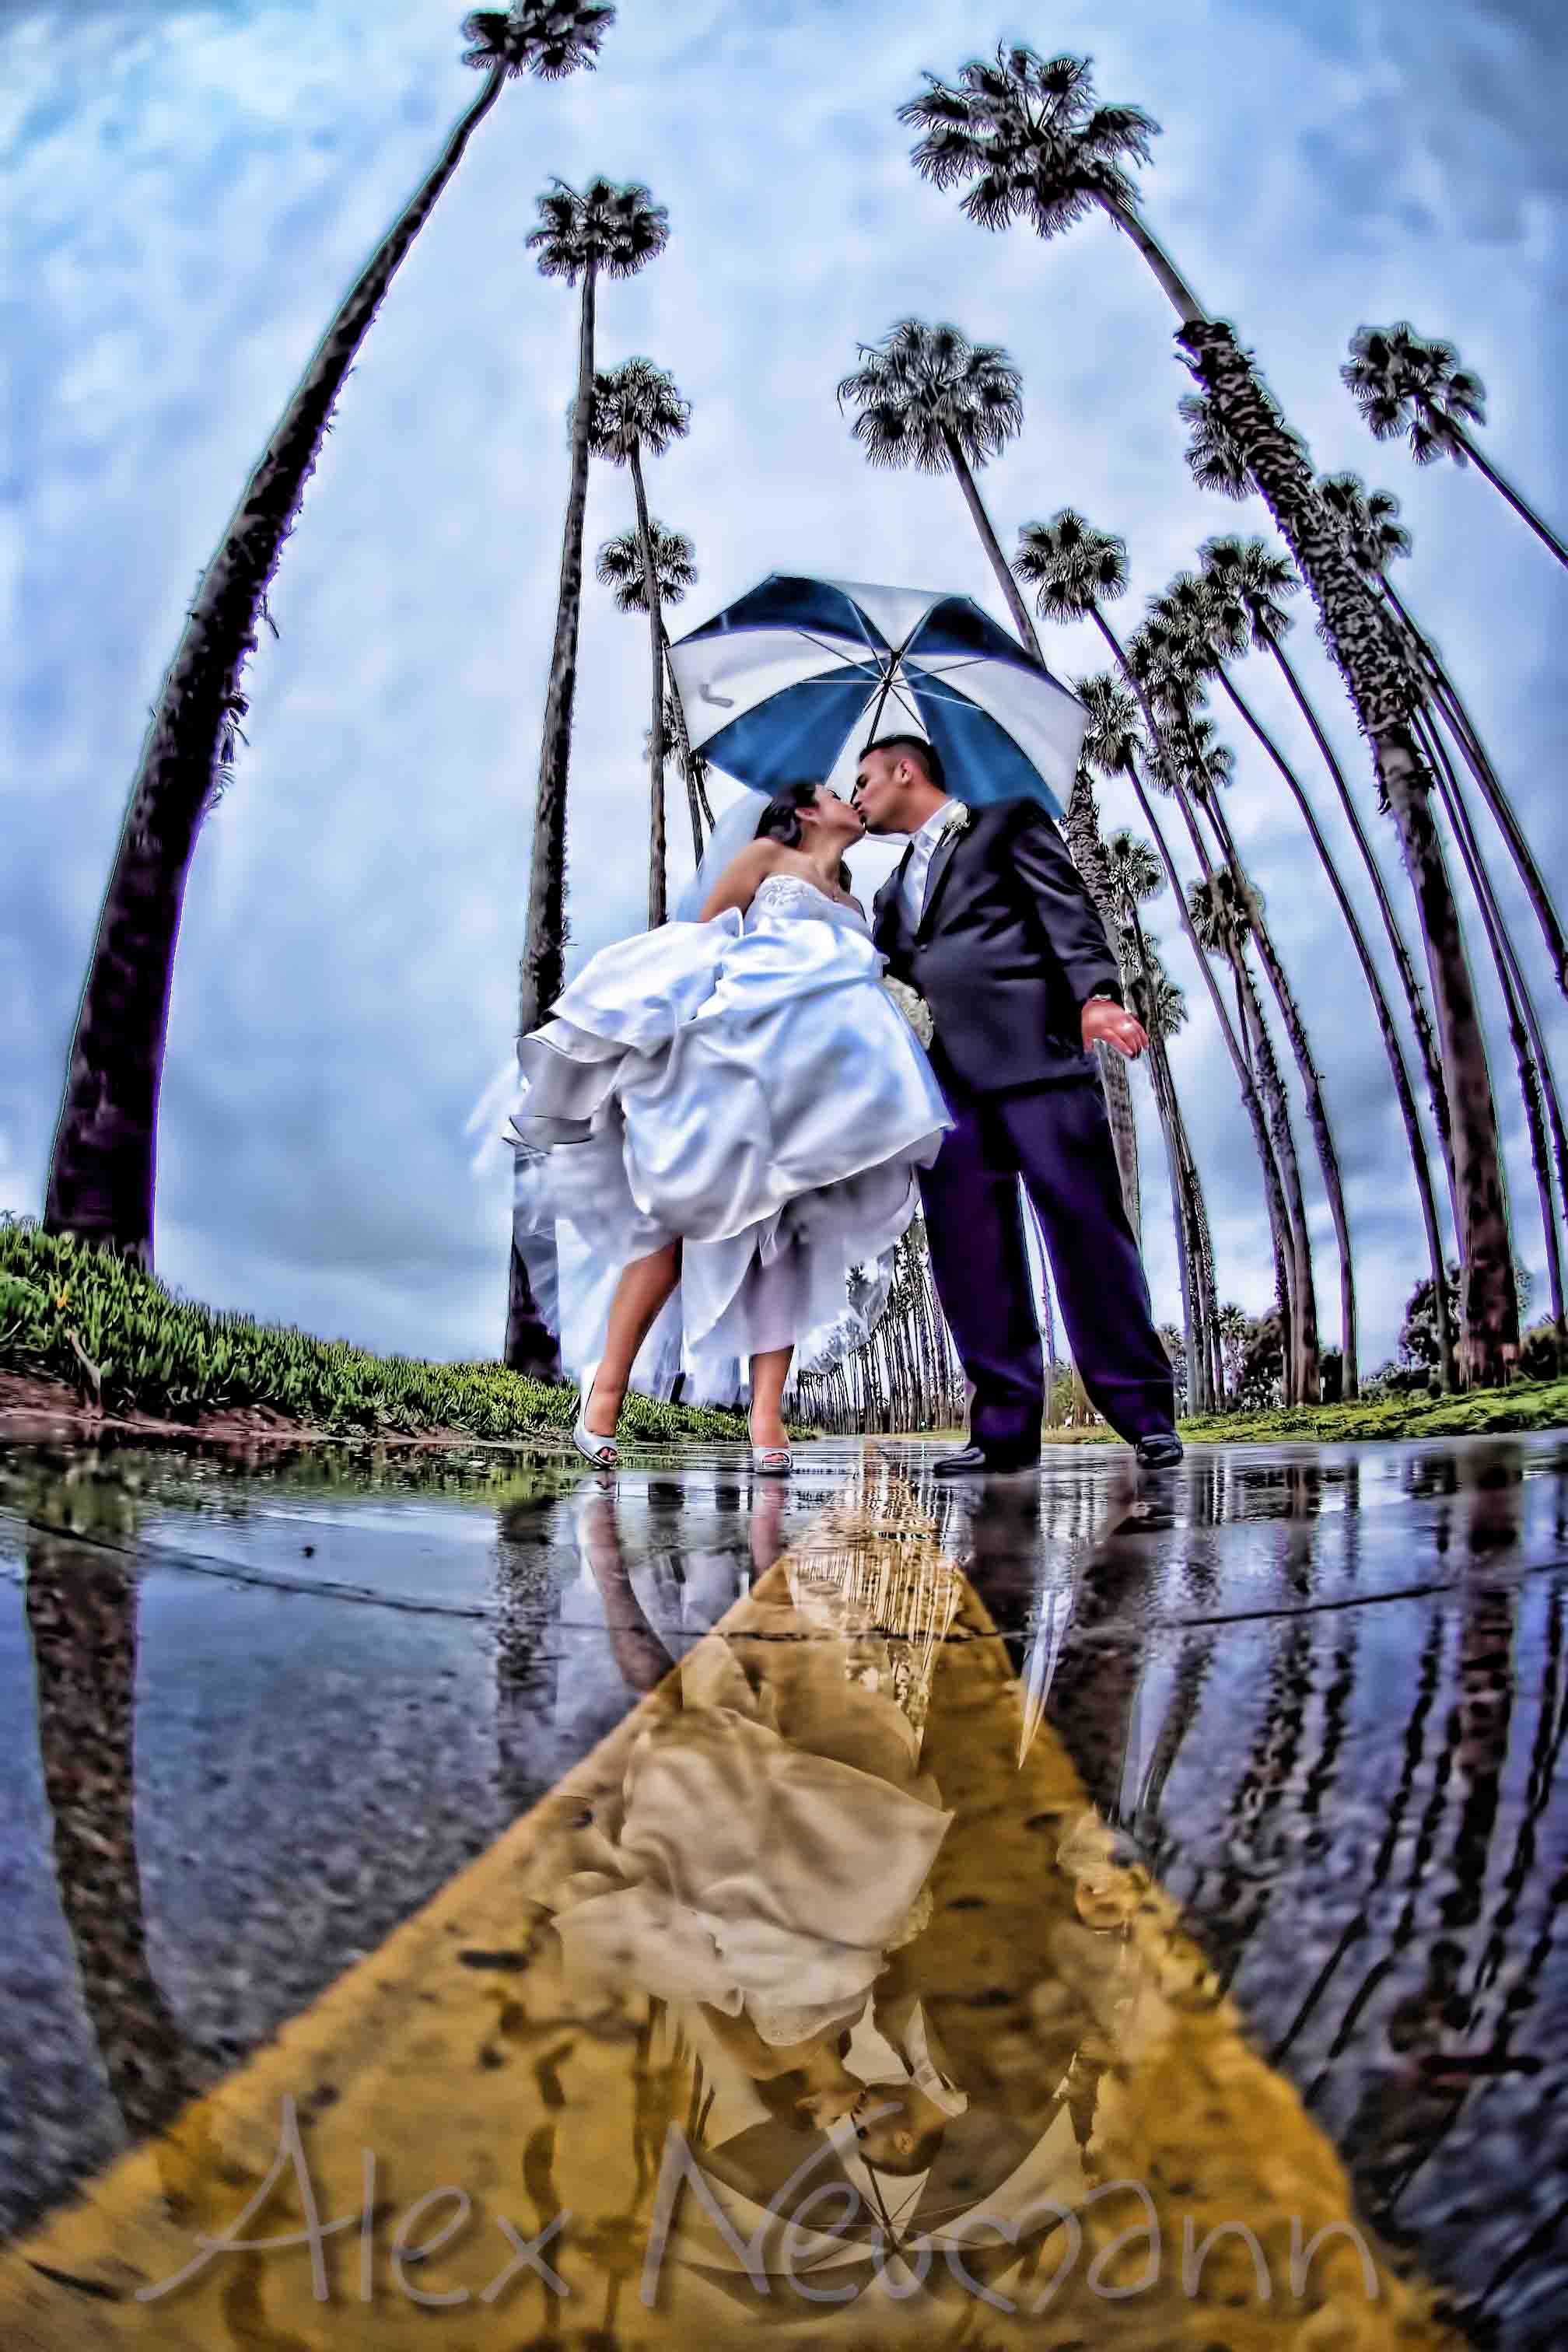 Cippa. org : Welcome to the Channel Islands Alex neumann wedding photography